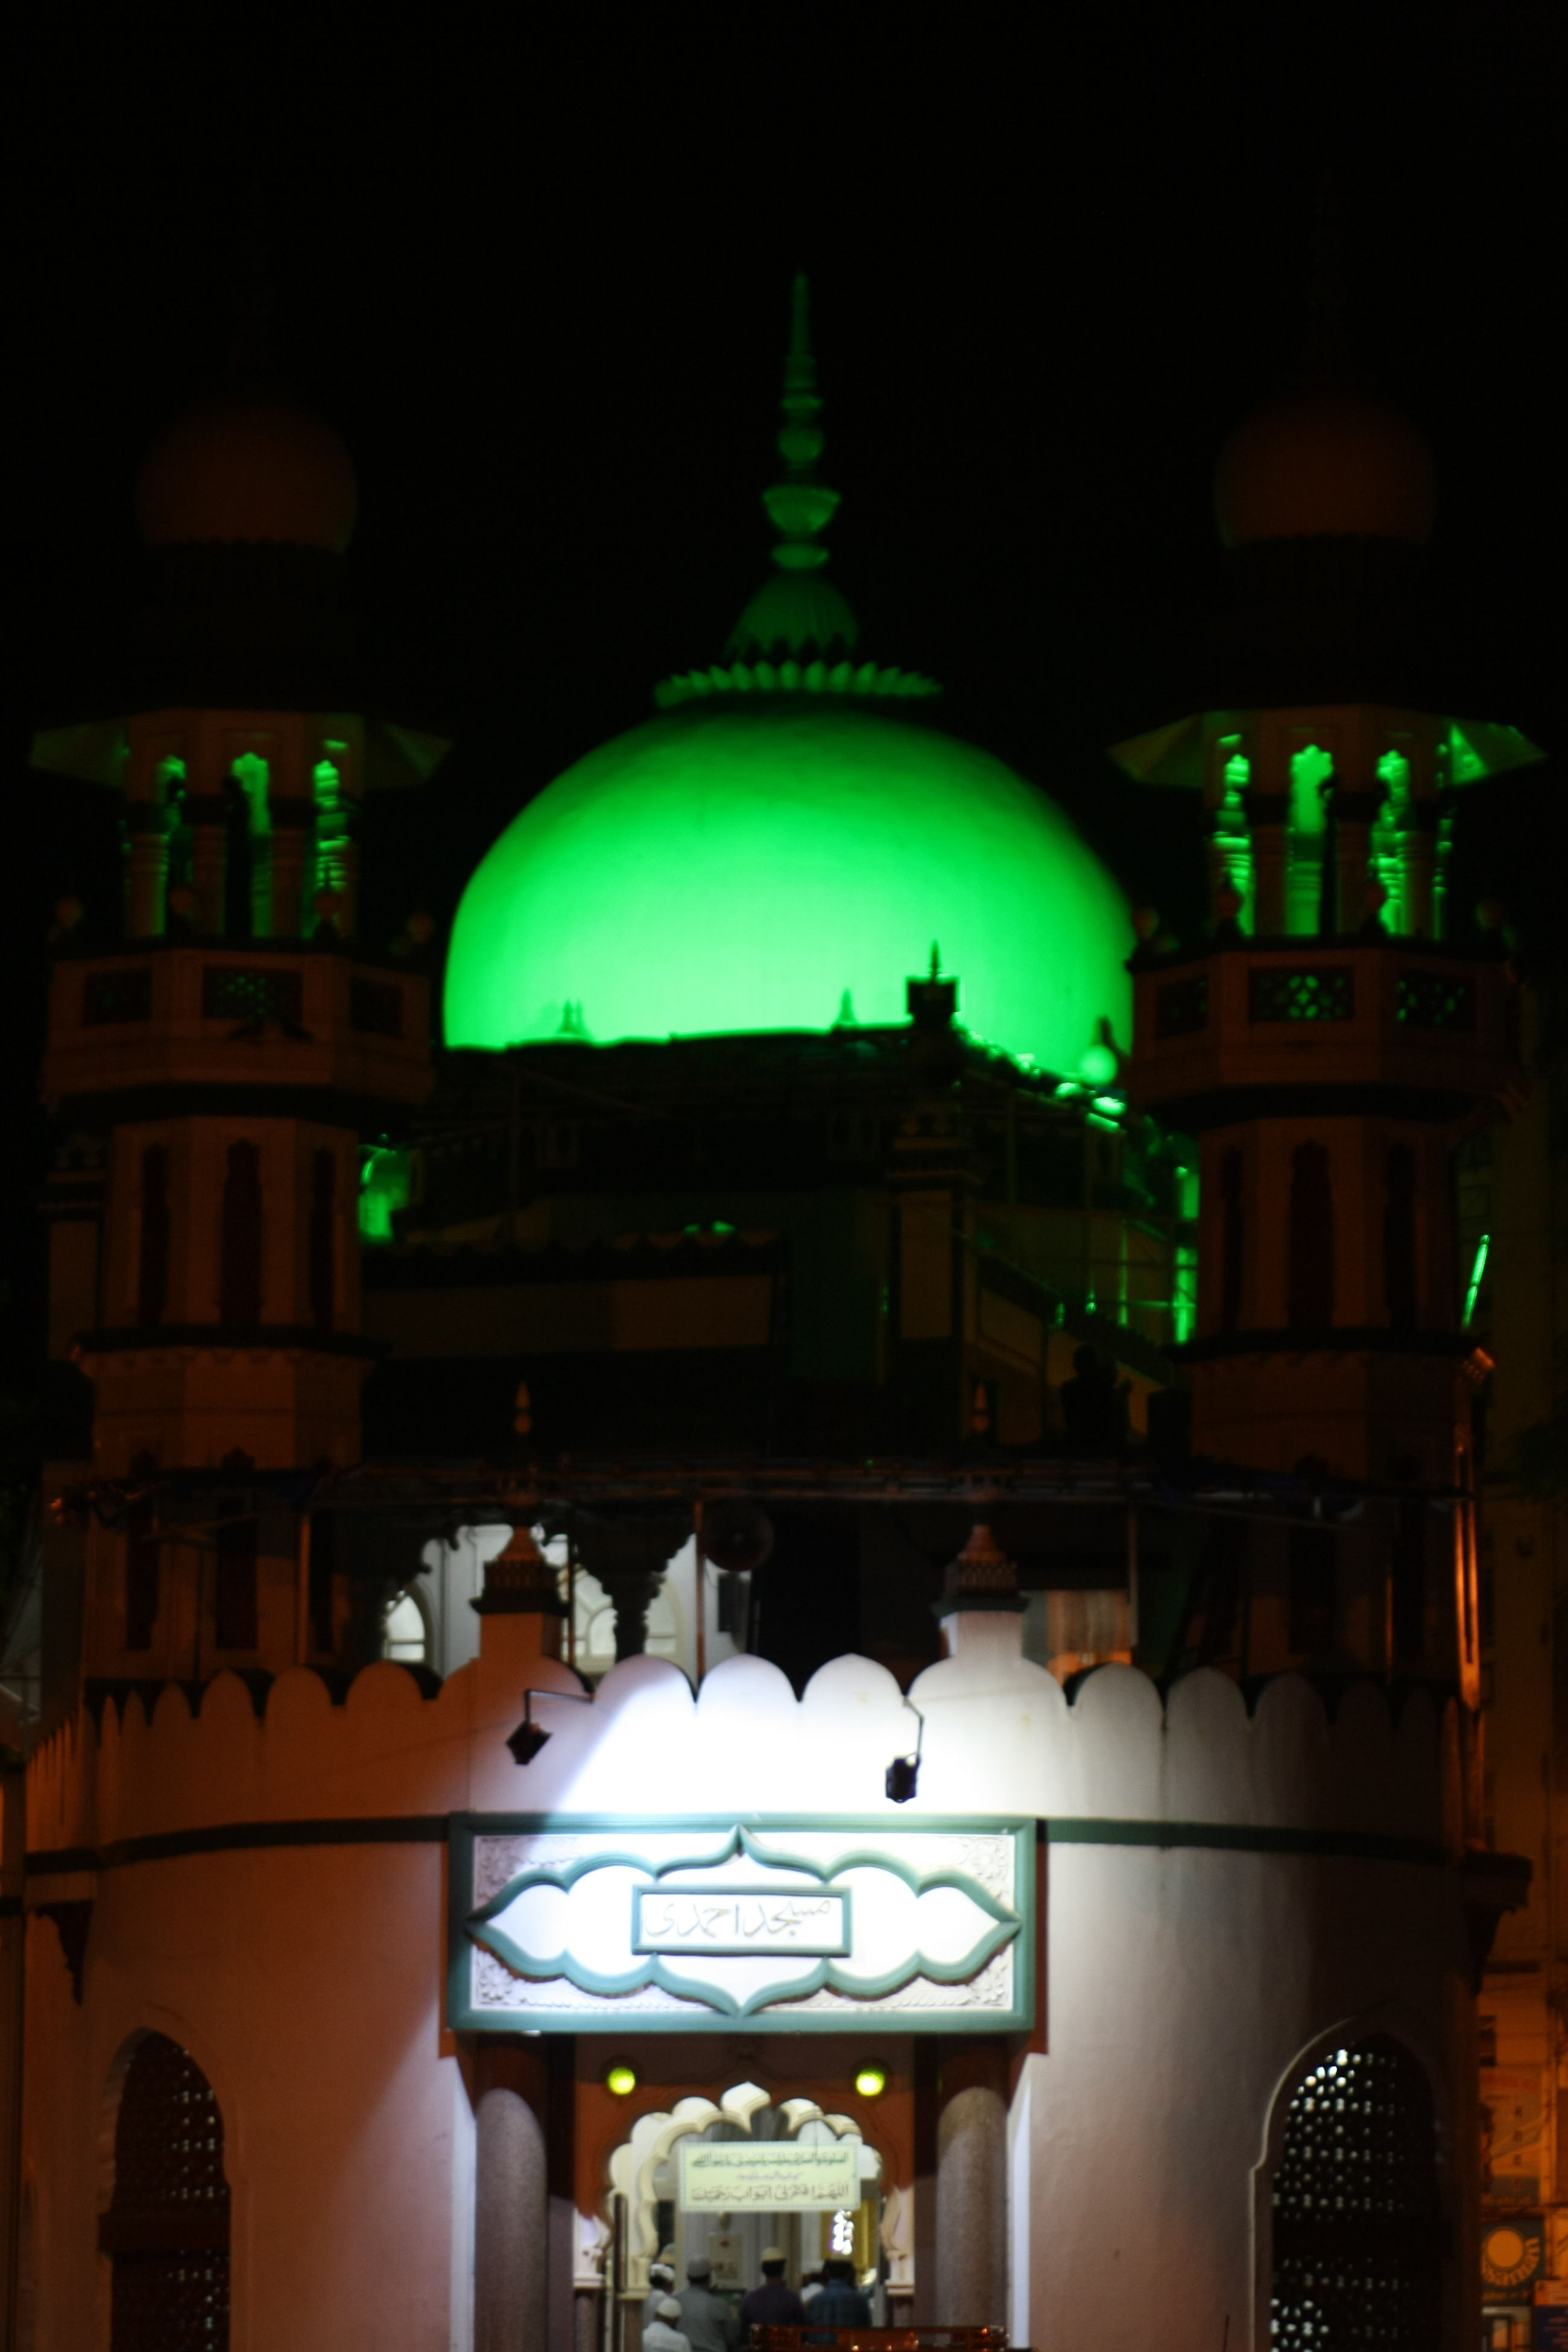 illuminated, night, architecture, low angle view, green color, built structure, building exterior, animal themes, sky, high section, zoology, lit, no people